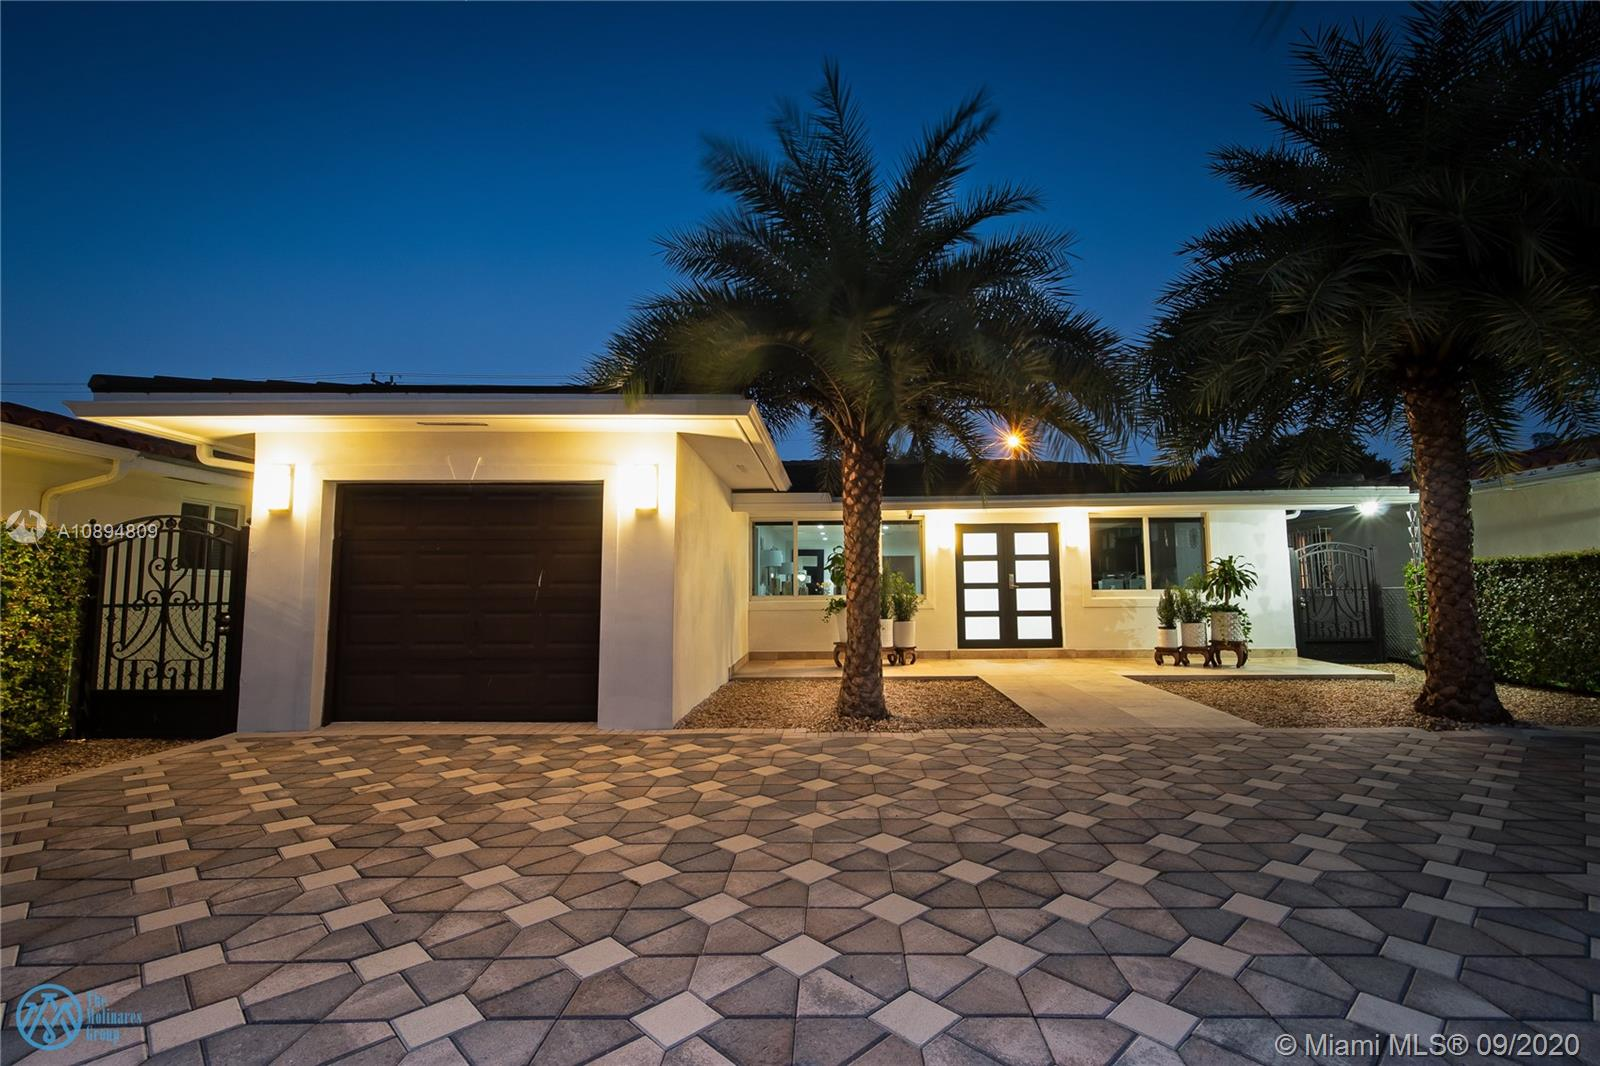 Photo - 1115 RED ROAD, Coral Gables FL 33144